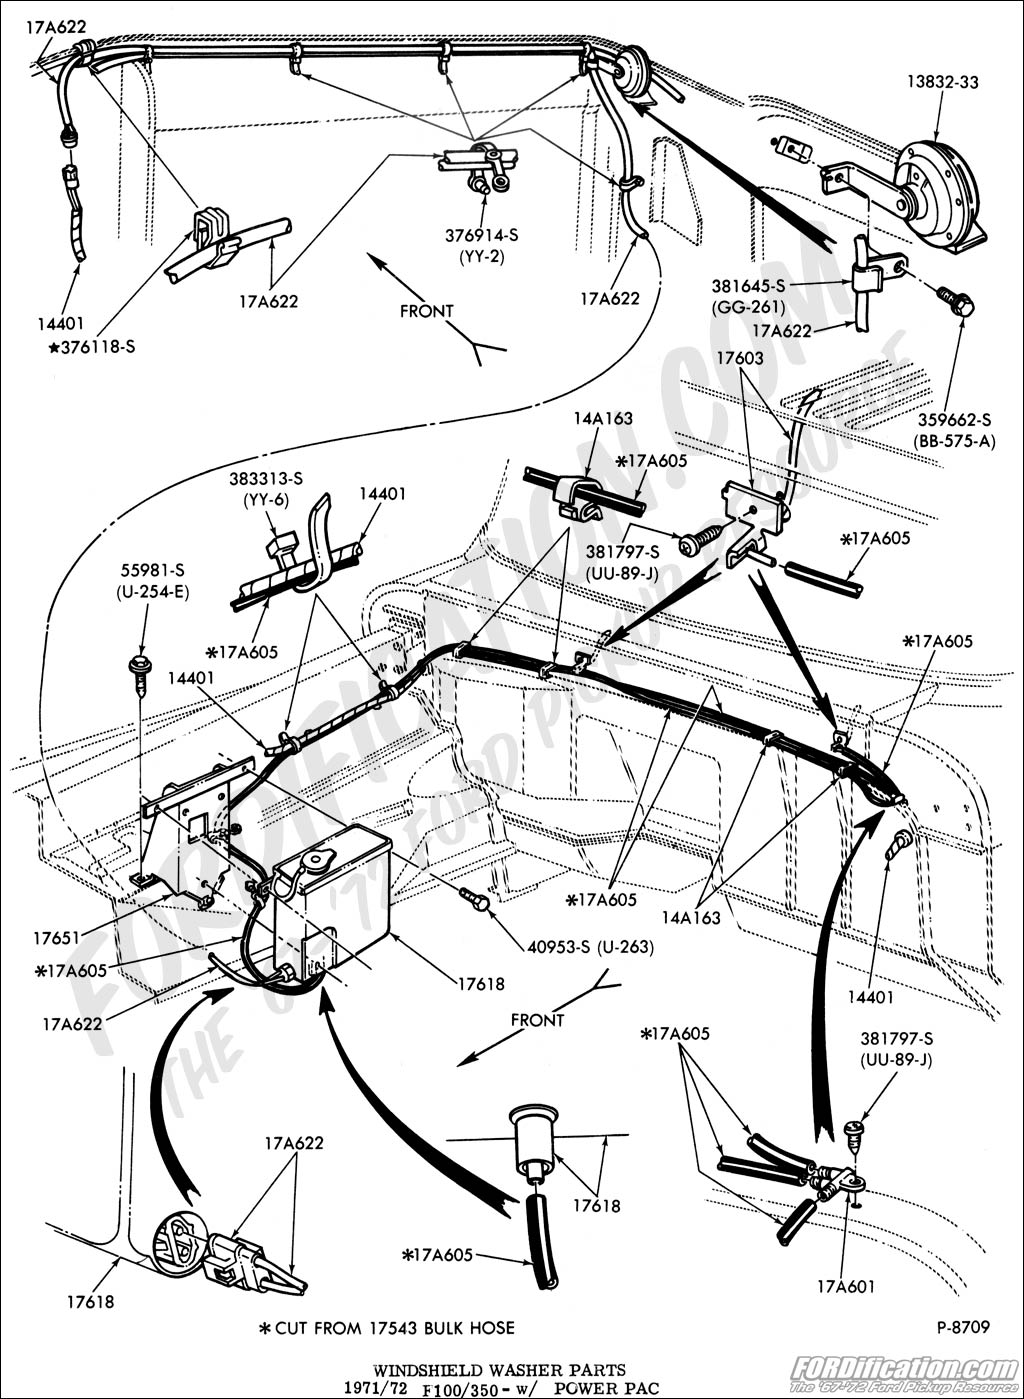 2006 Ford Mustang Fuse Box Diagram Content Resource Of Wiring 1998 V6 Truck Technical Drawings And Schematics Section I Panel